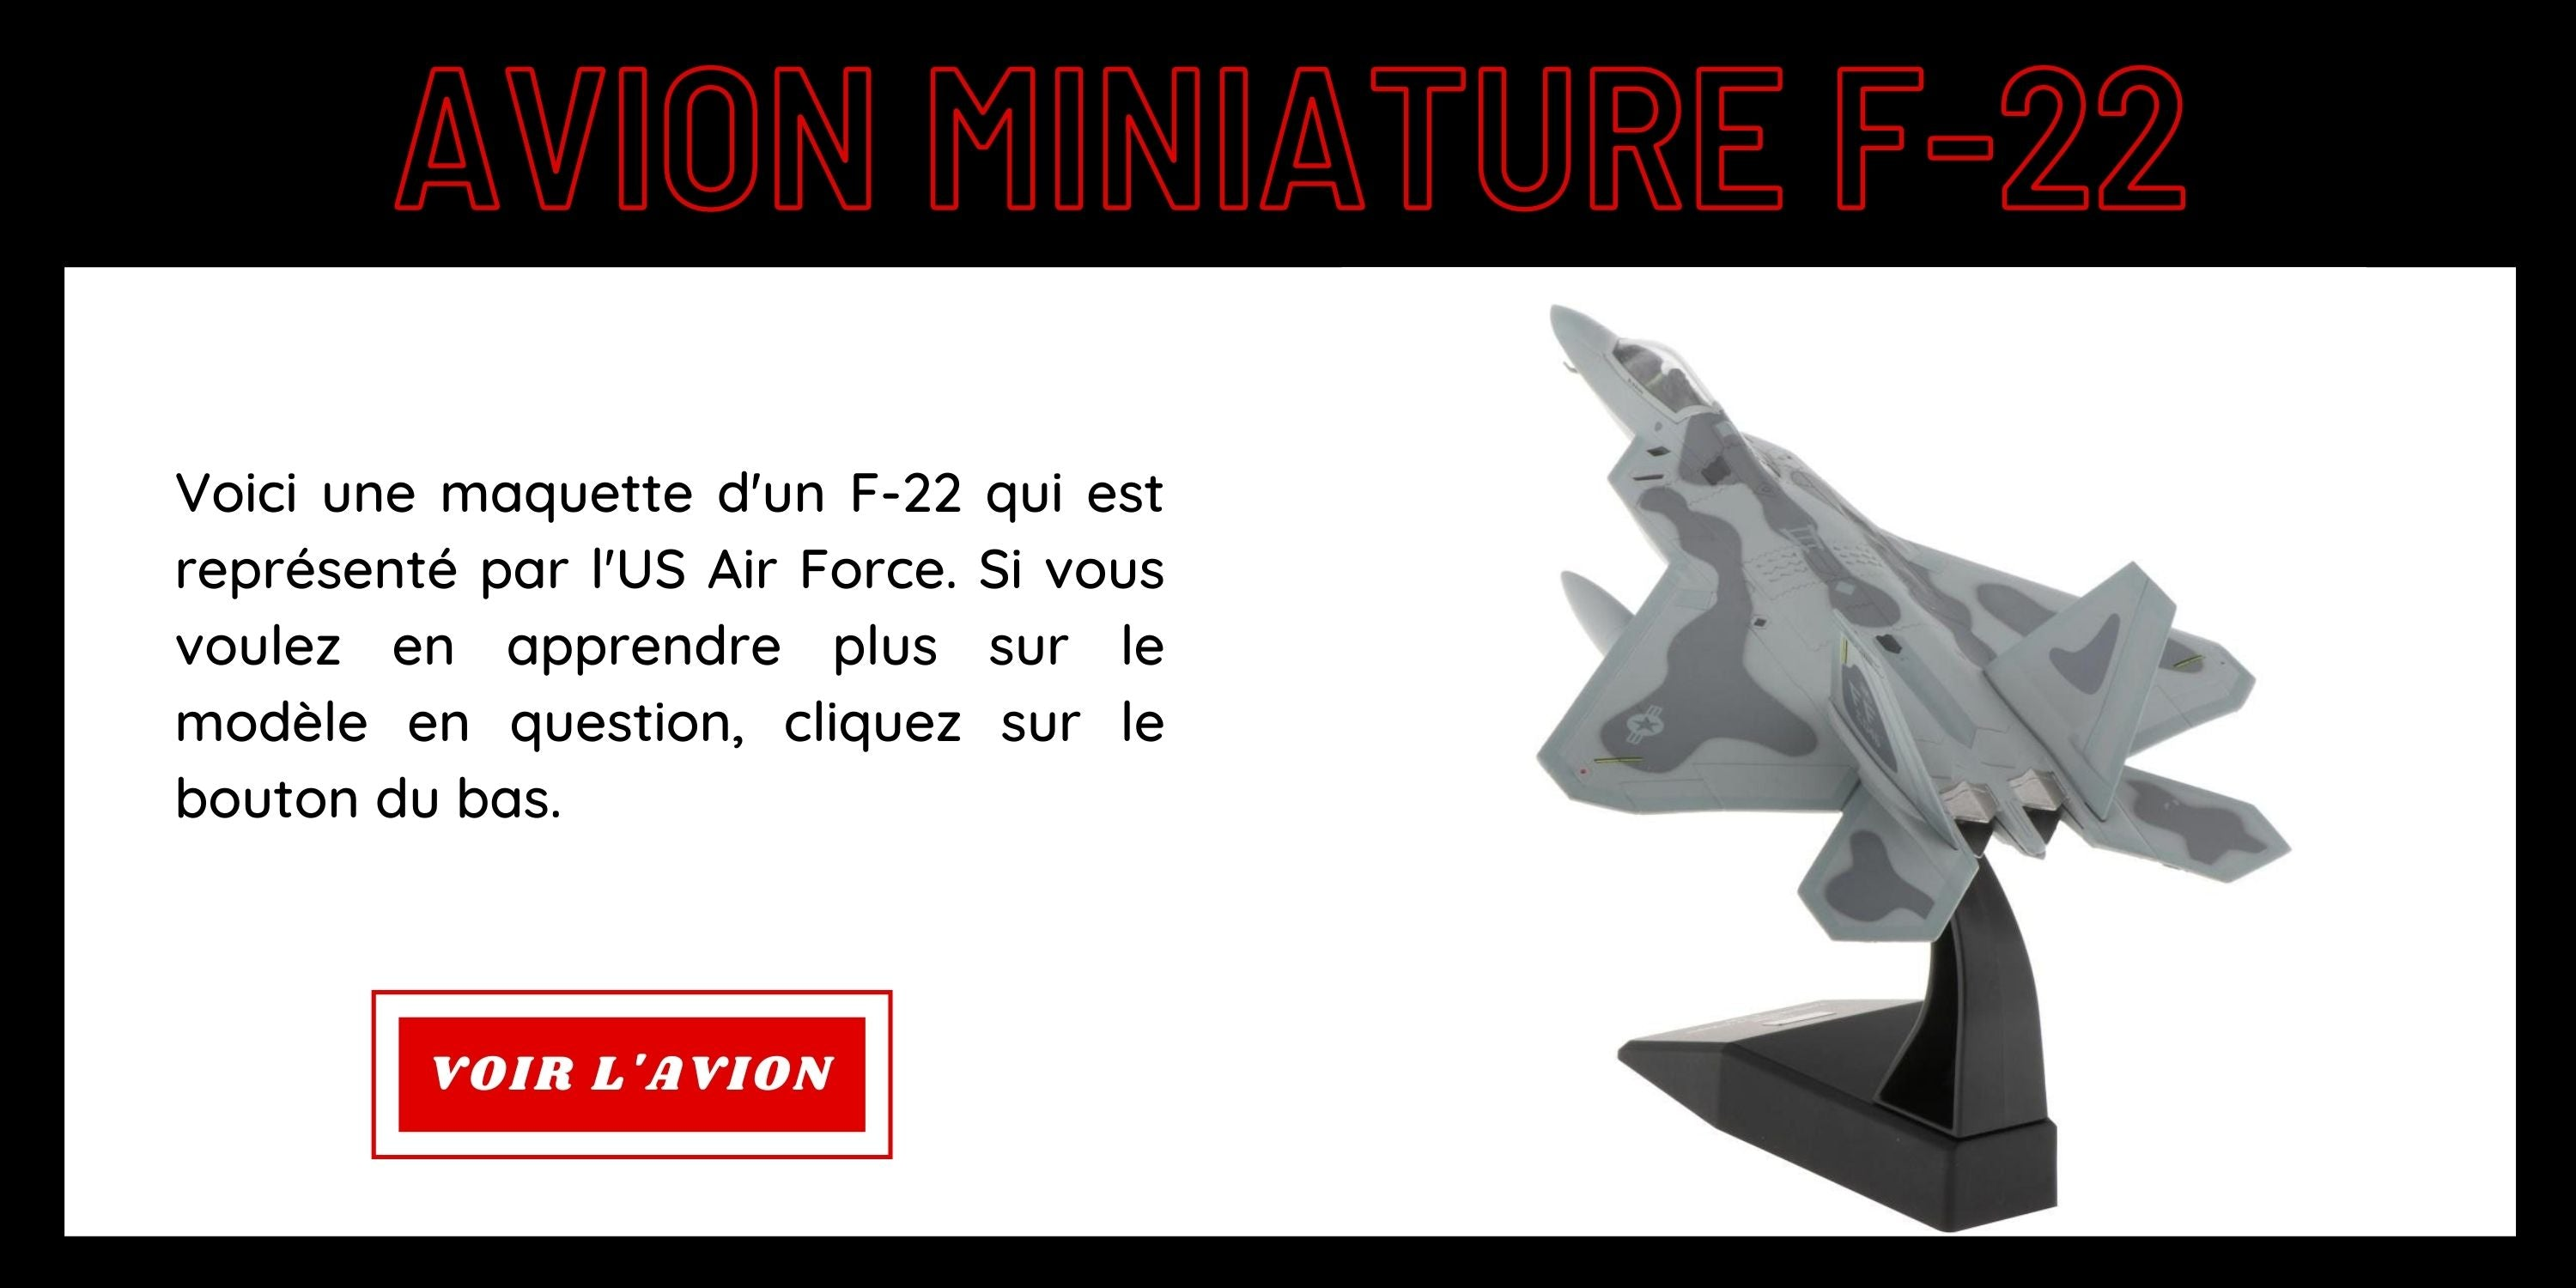 Avion Miniature F-22